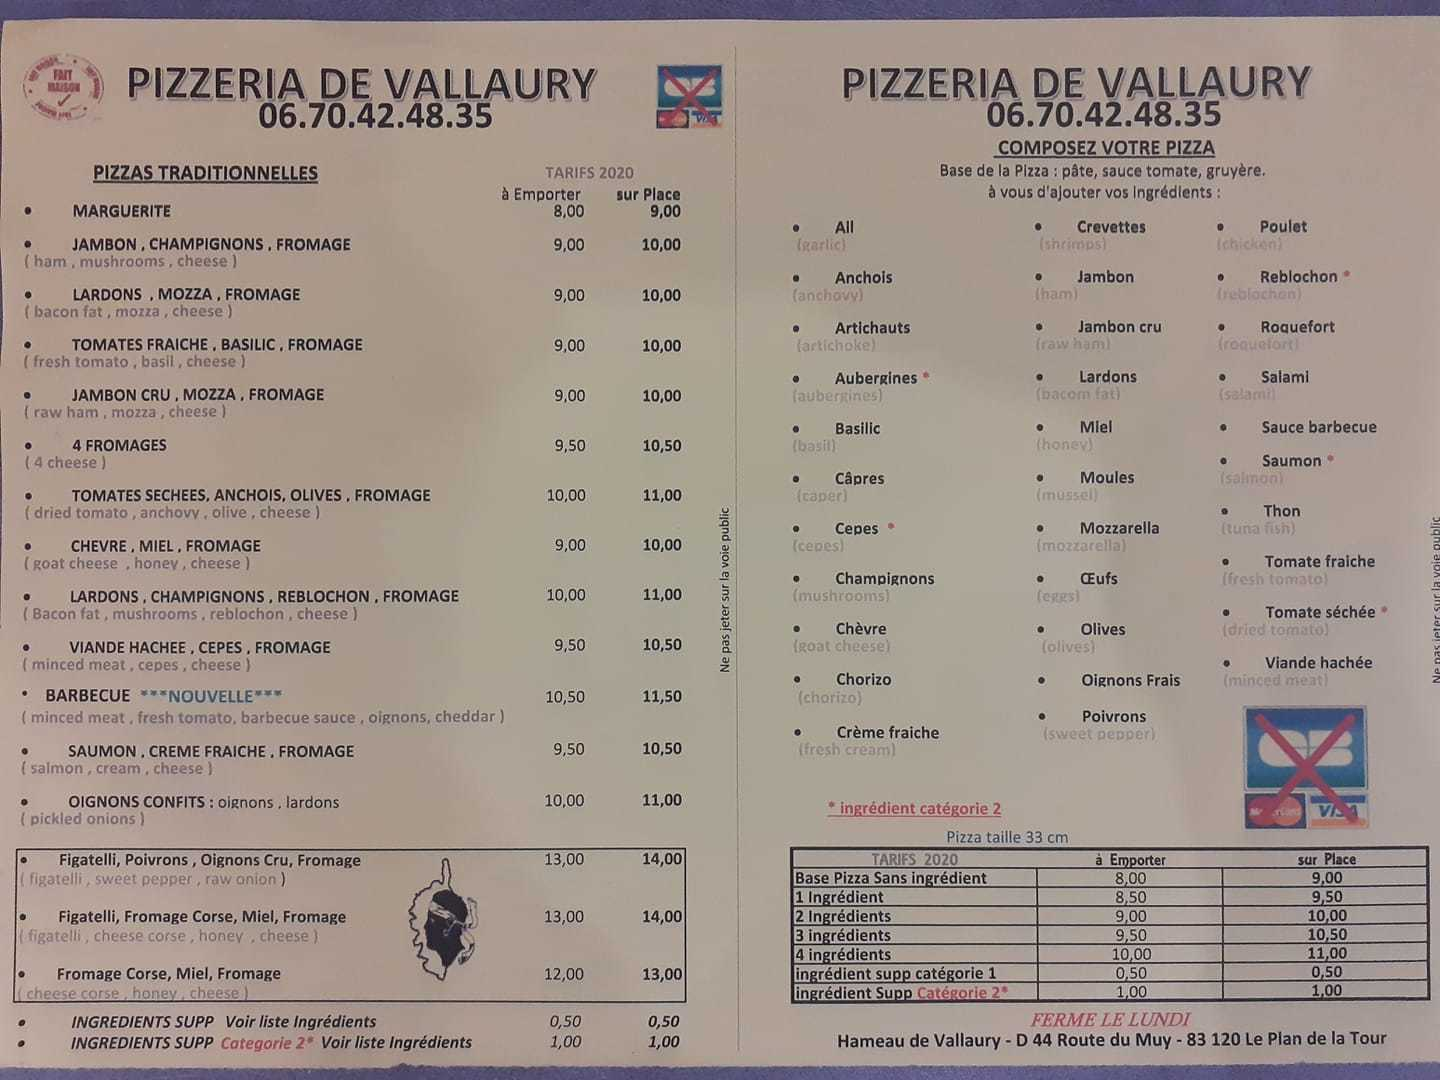 pizza Vallaury